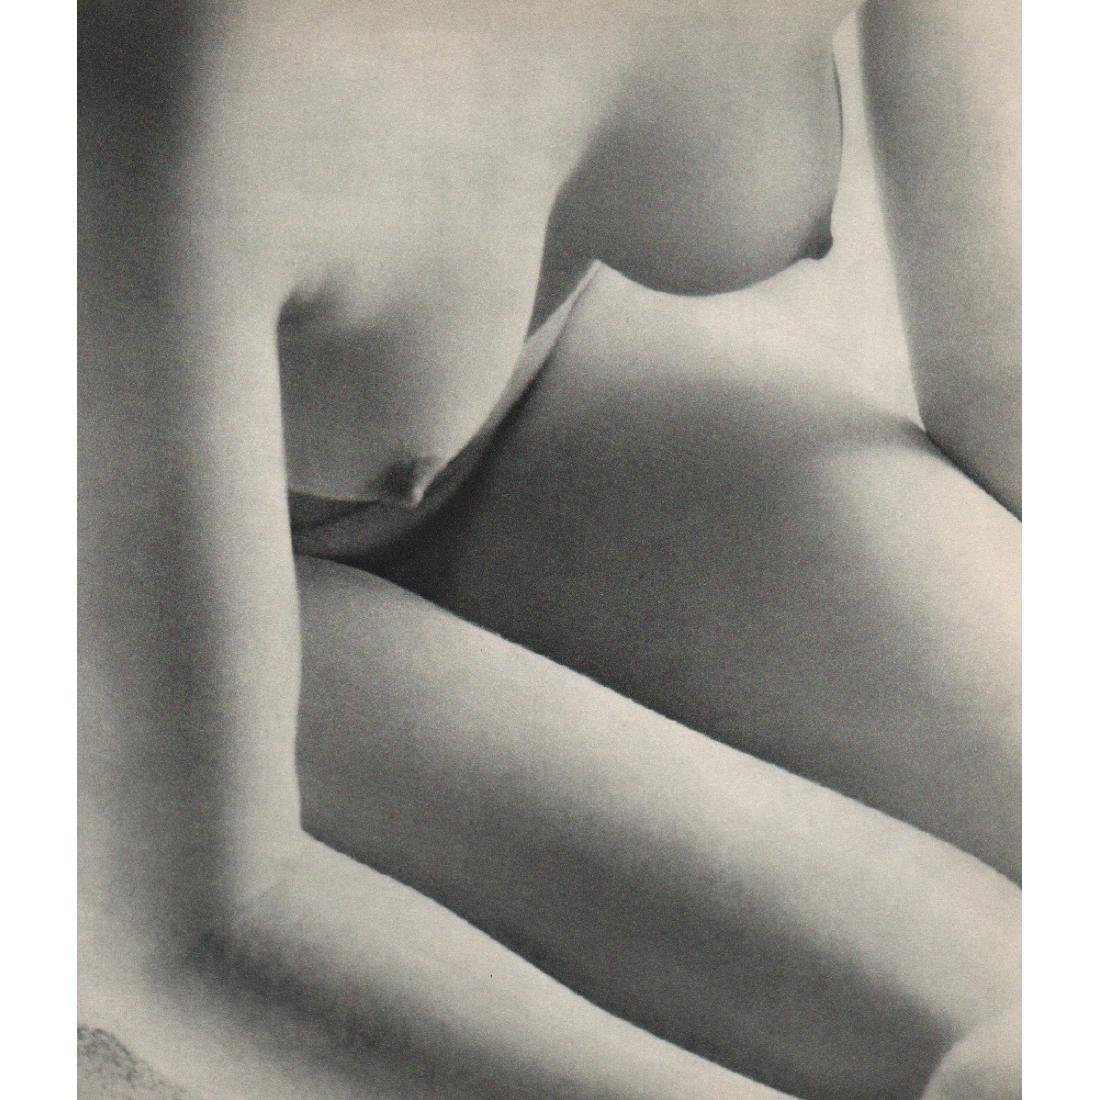 DR. WOLF STRACHE - Nude